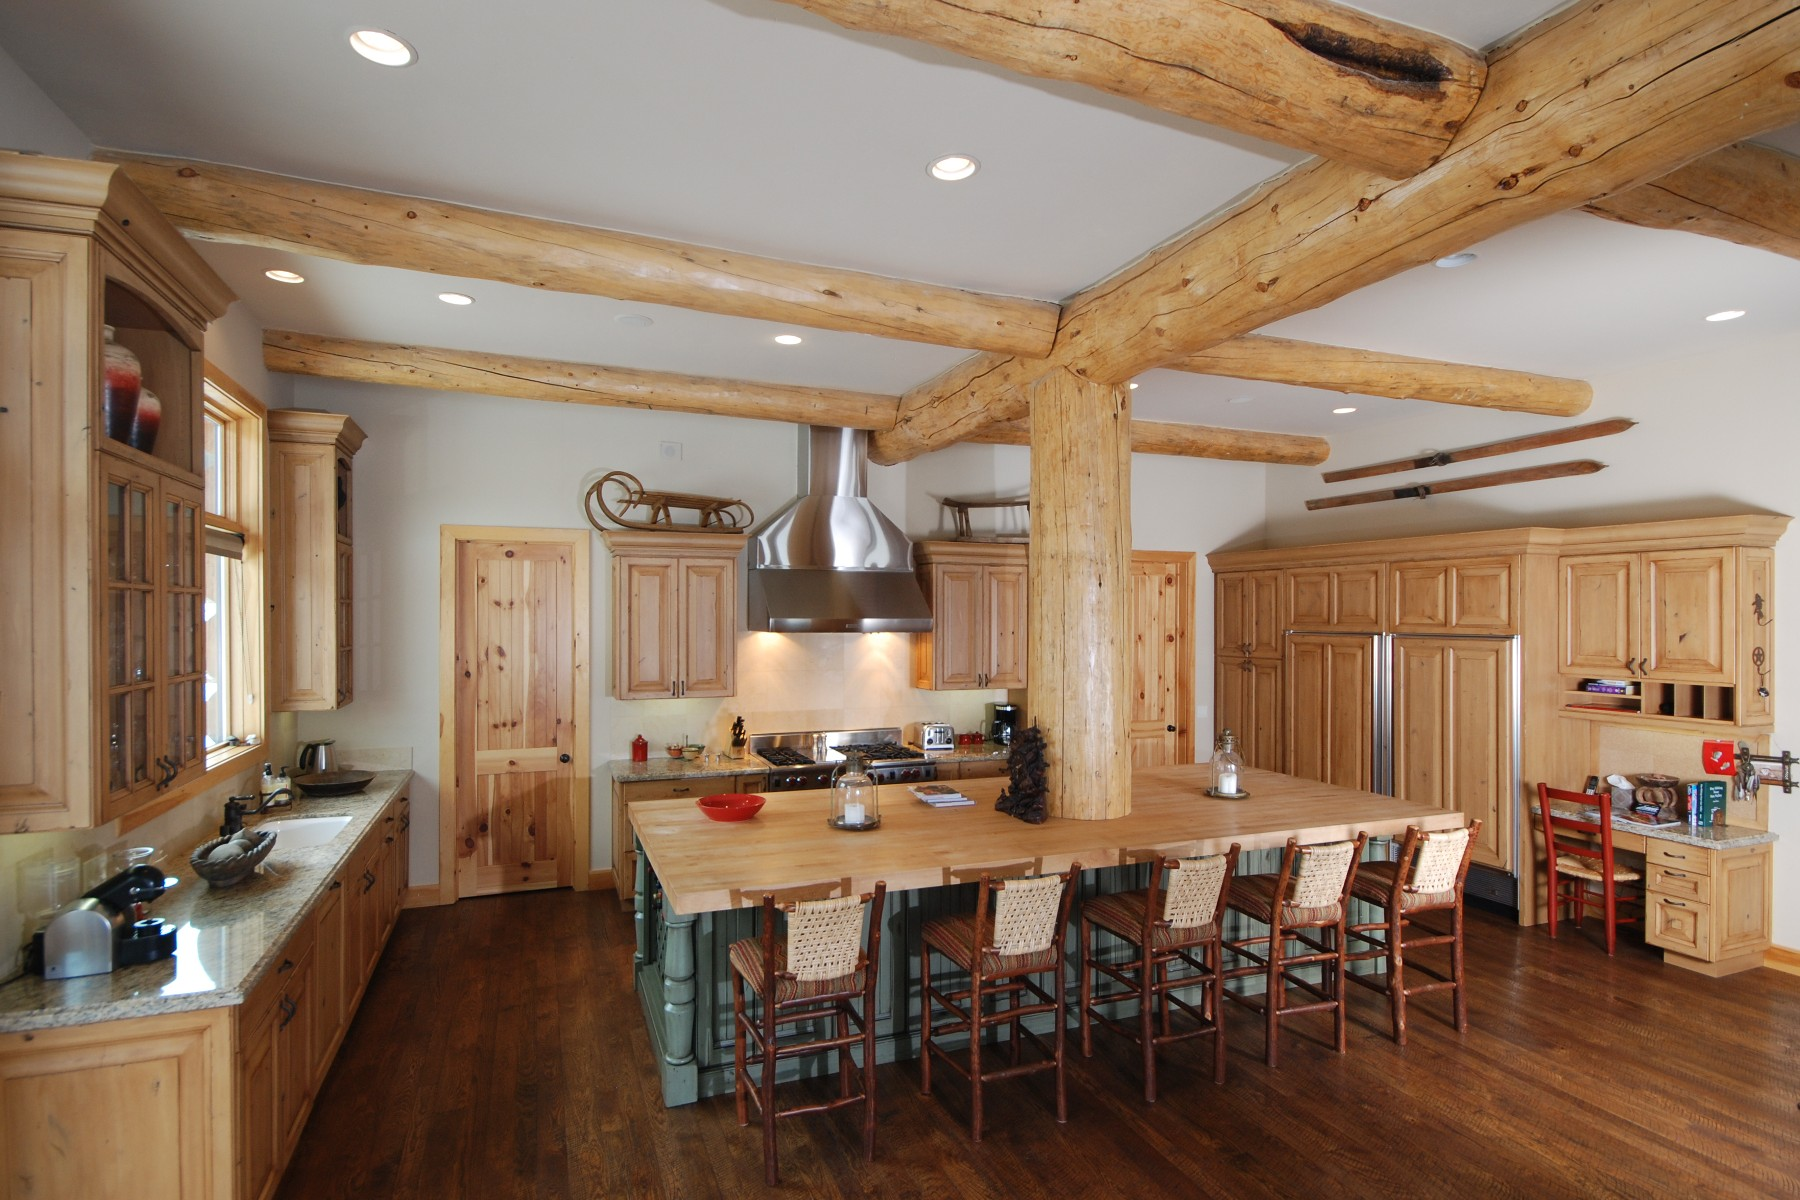 Additional photo for property listing at A Gathering Place 80 River Sage Court 凯彻姆, 爱达荷州 83340 美国